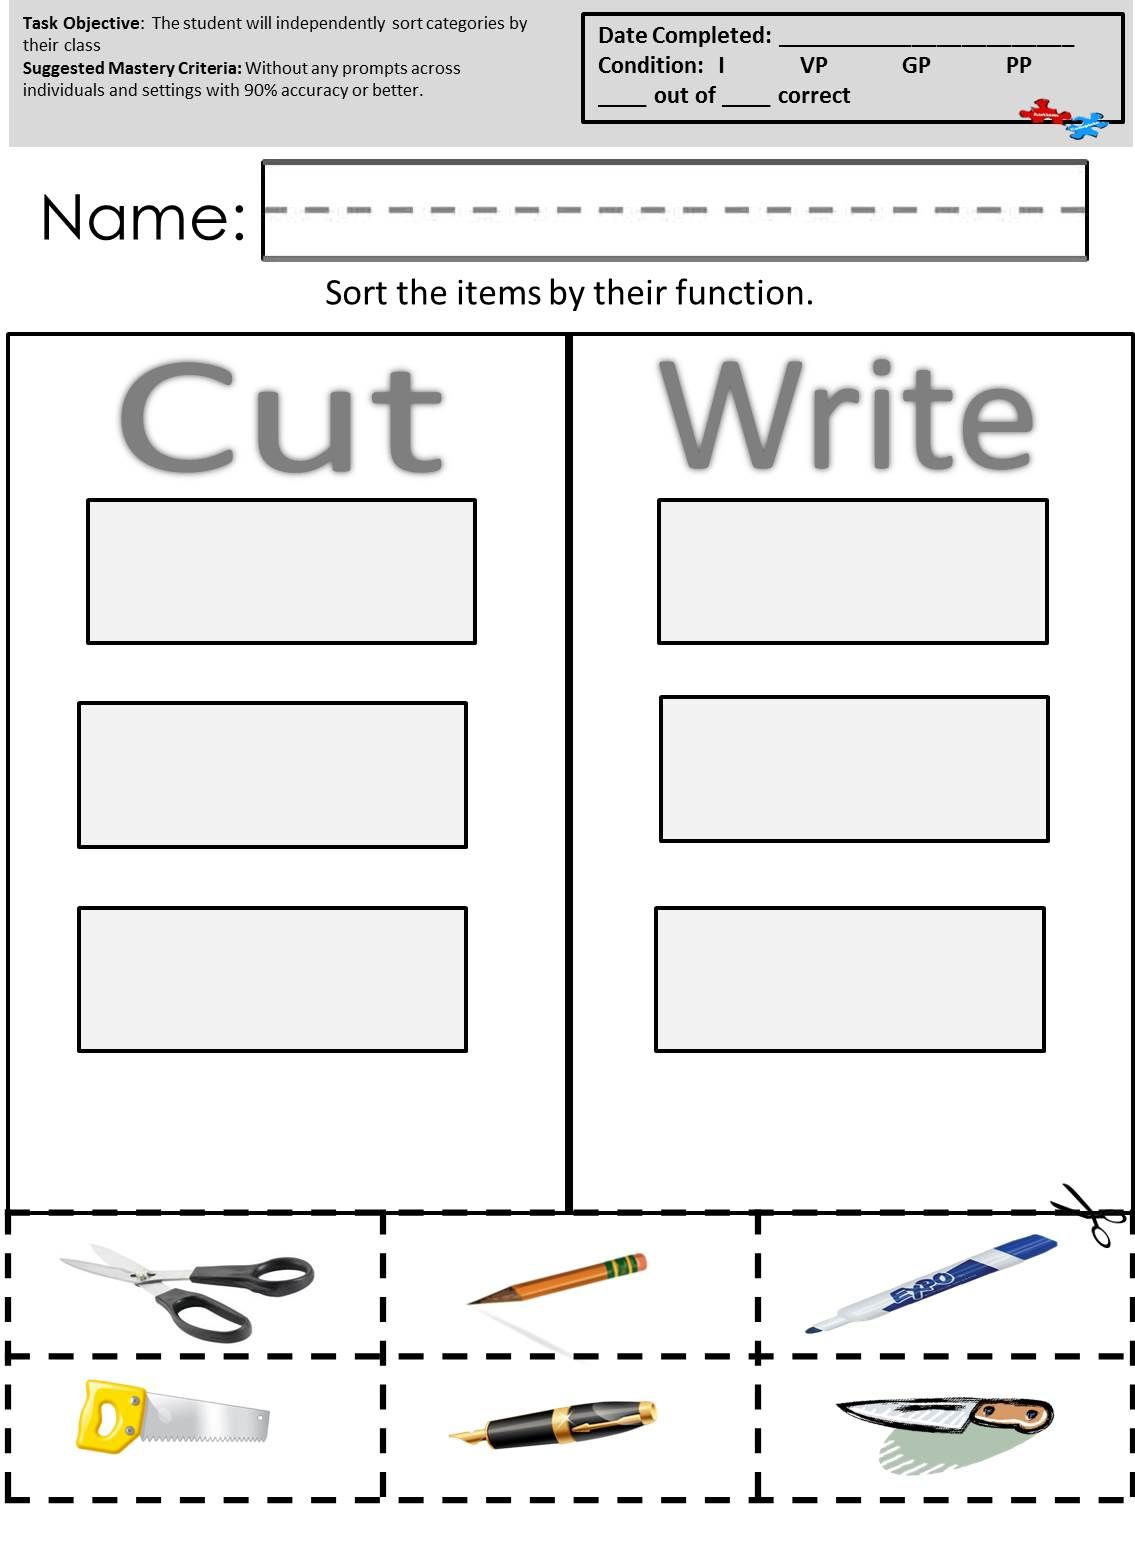 Practice Important Skills Easily With These Worksheets